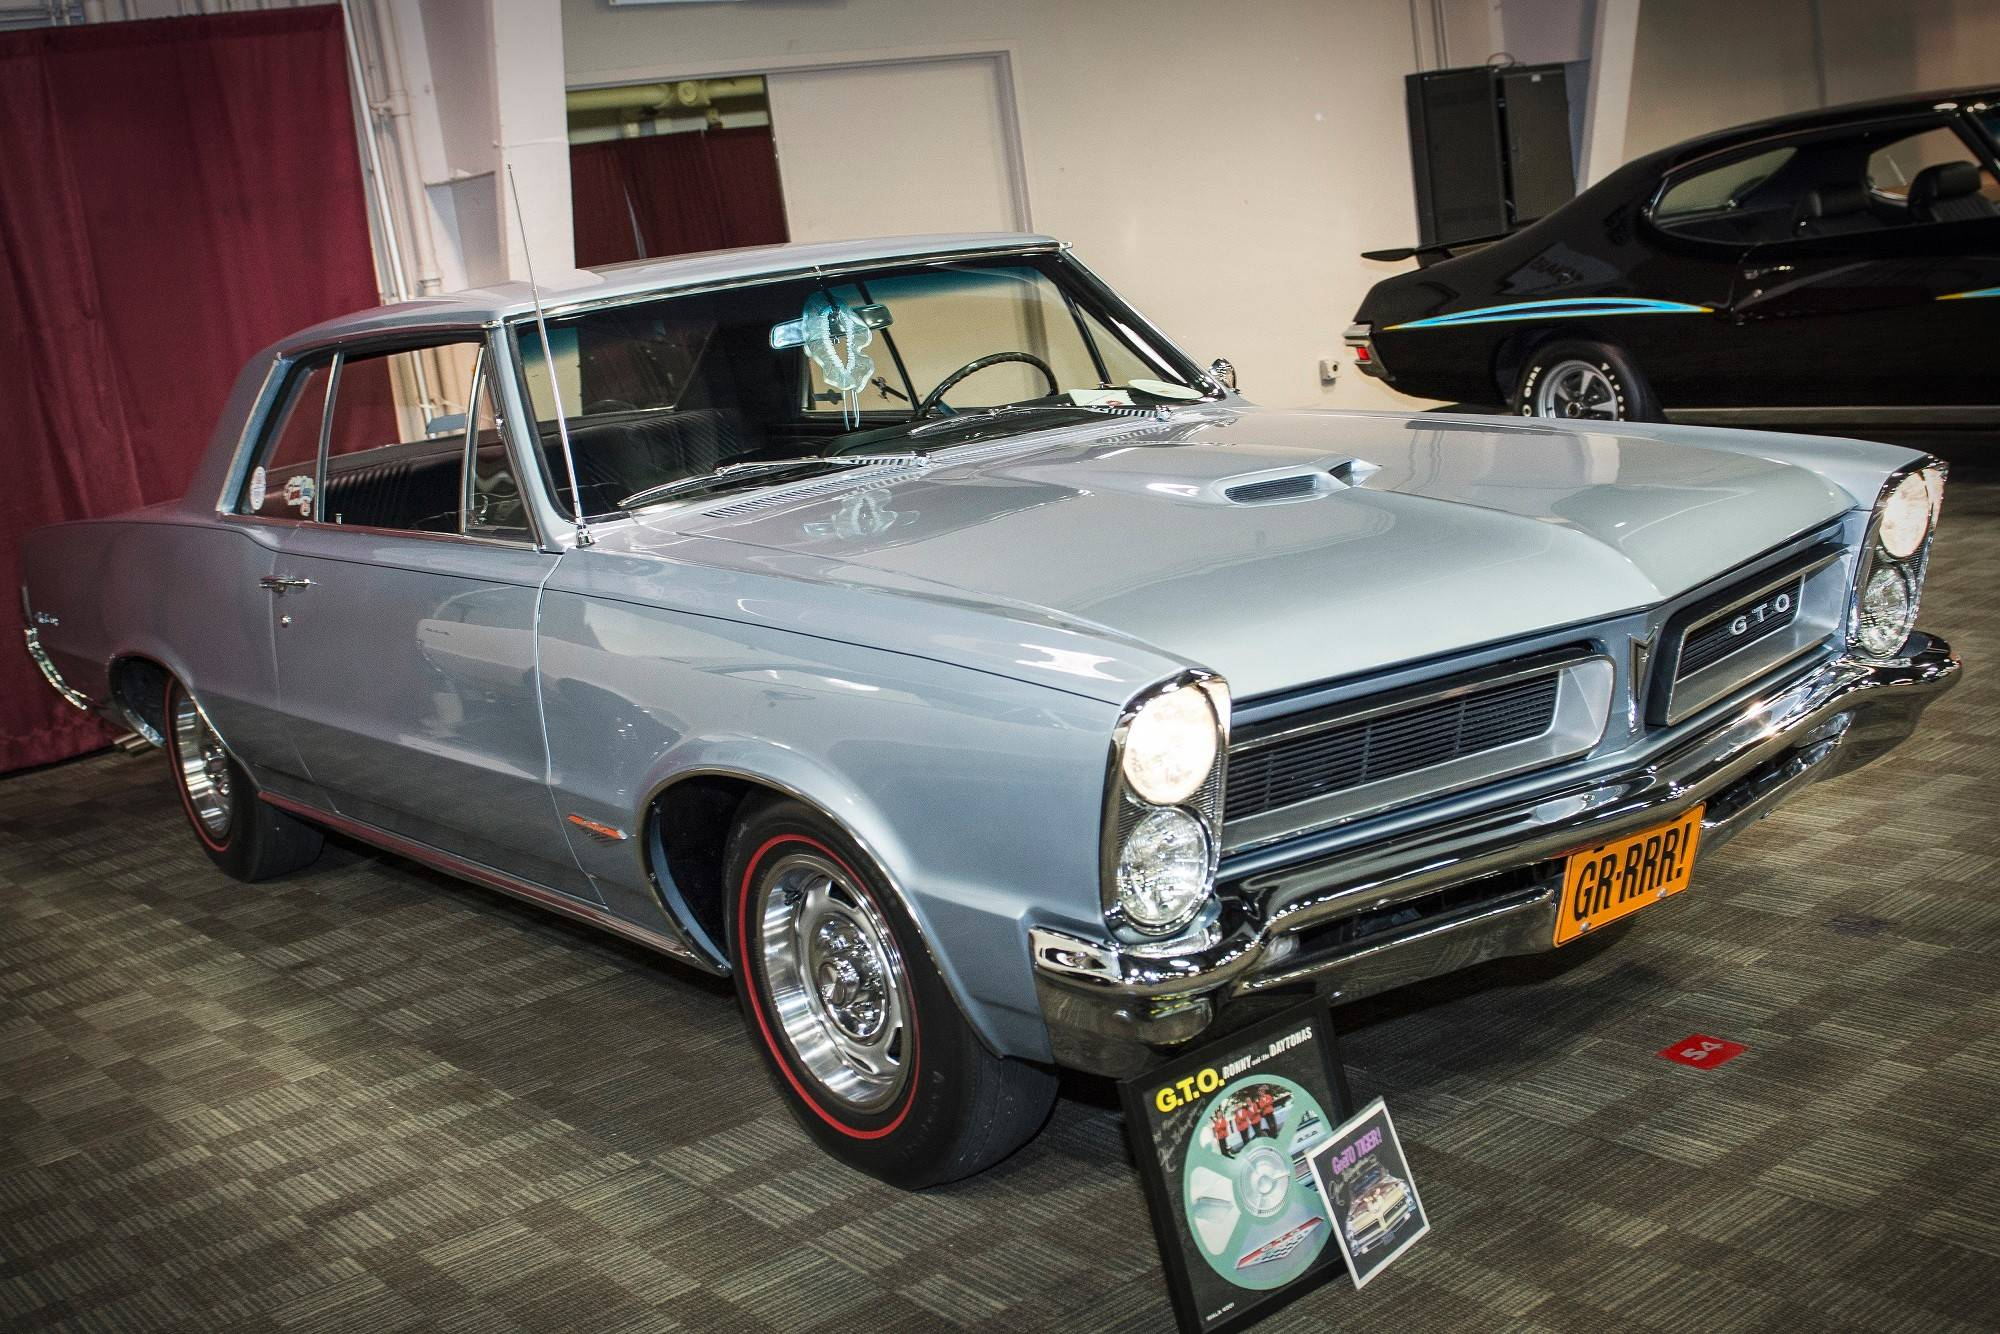 Minarich's GTO is painted in Bluemist Slate paint. It was originally delivered to a dealership in Ohio.